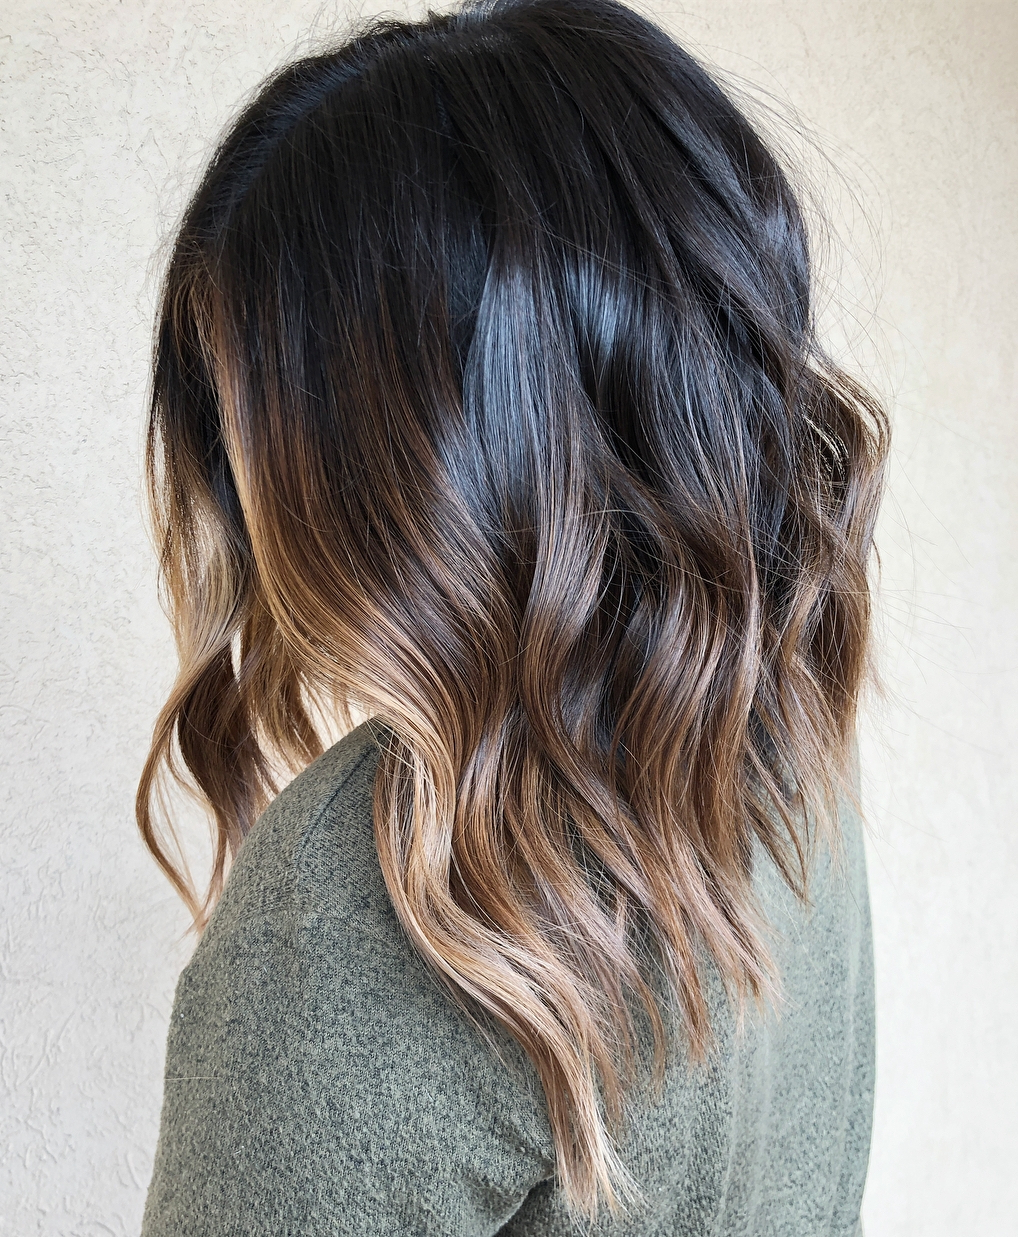 Famous Soft Highlighted Curls Hairstyles With Side Part Inside 20 Best Face Framing Highlights For Every Base Color And (Gallery 5 of 20)